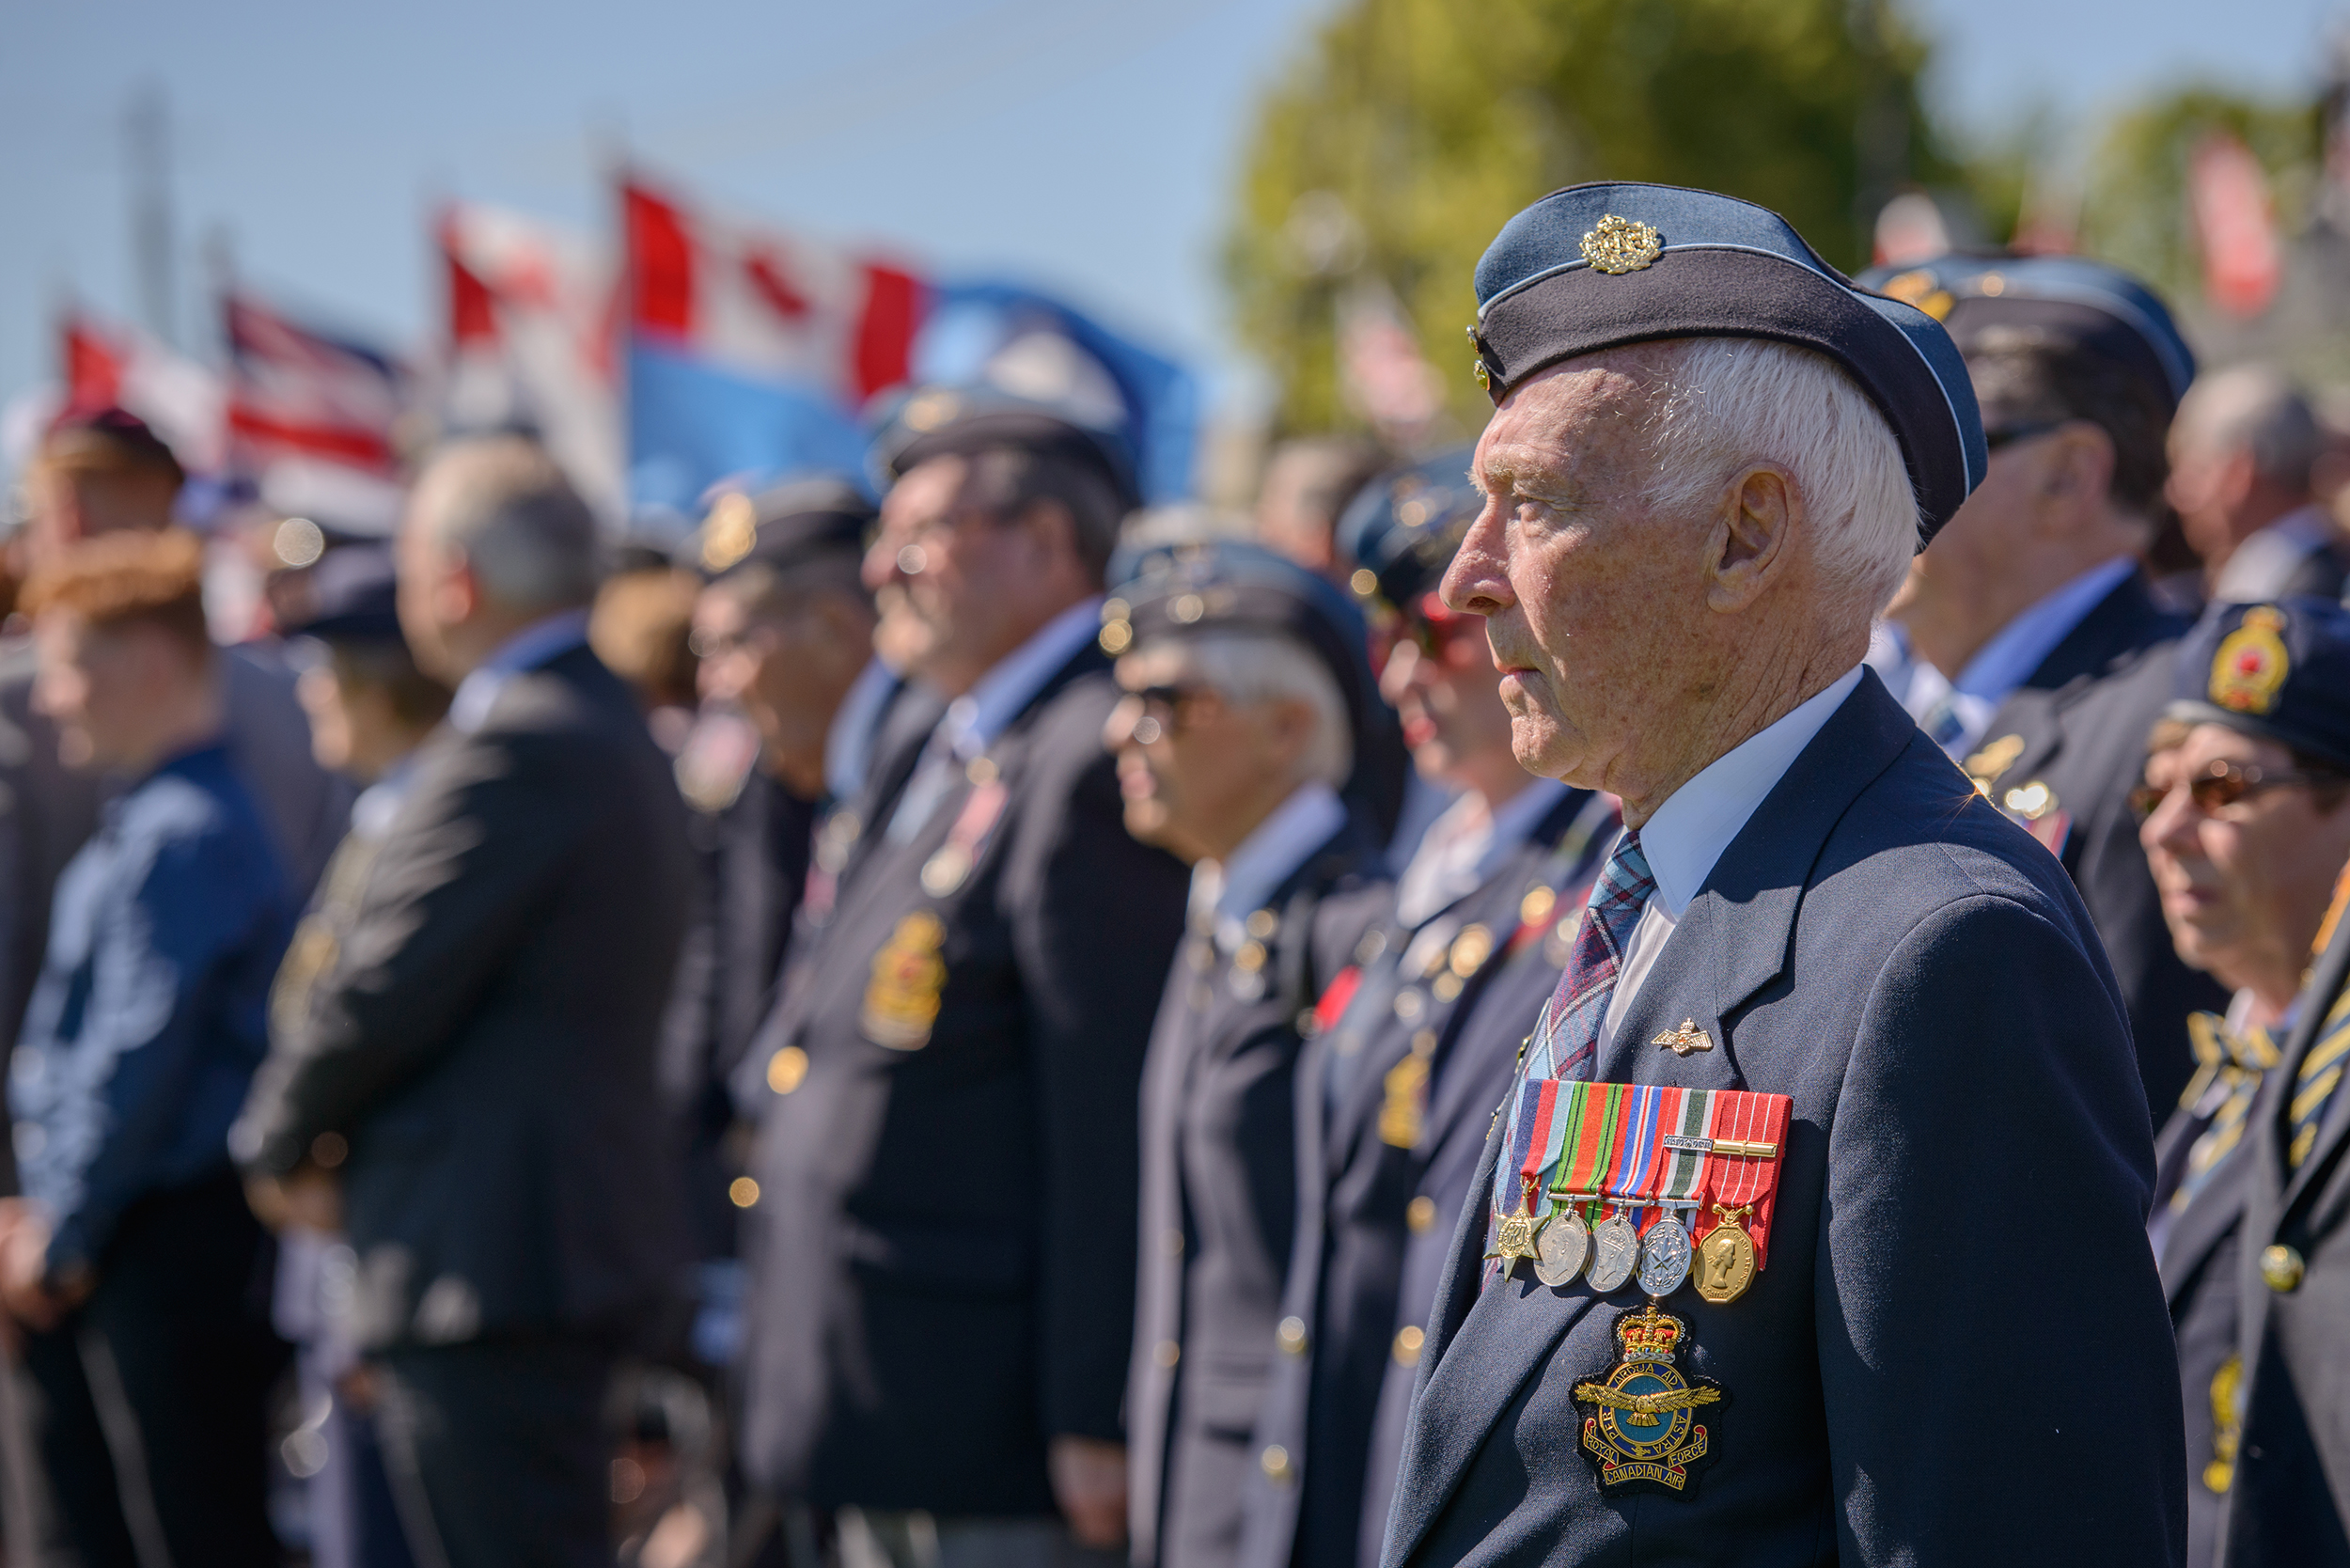 Royal Canadian Air Forces veterans stand during the national ceremony held at Parliament Hill on September 20, 2015, to mark the 75th anniversary of the Battle of Britain.